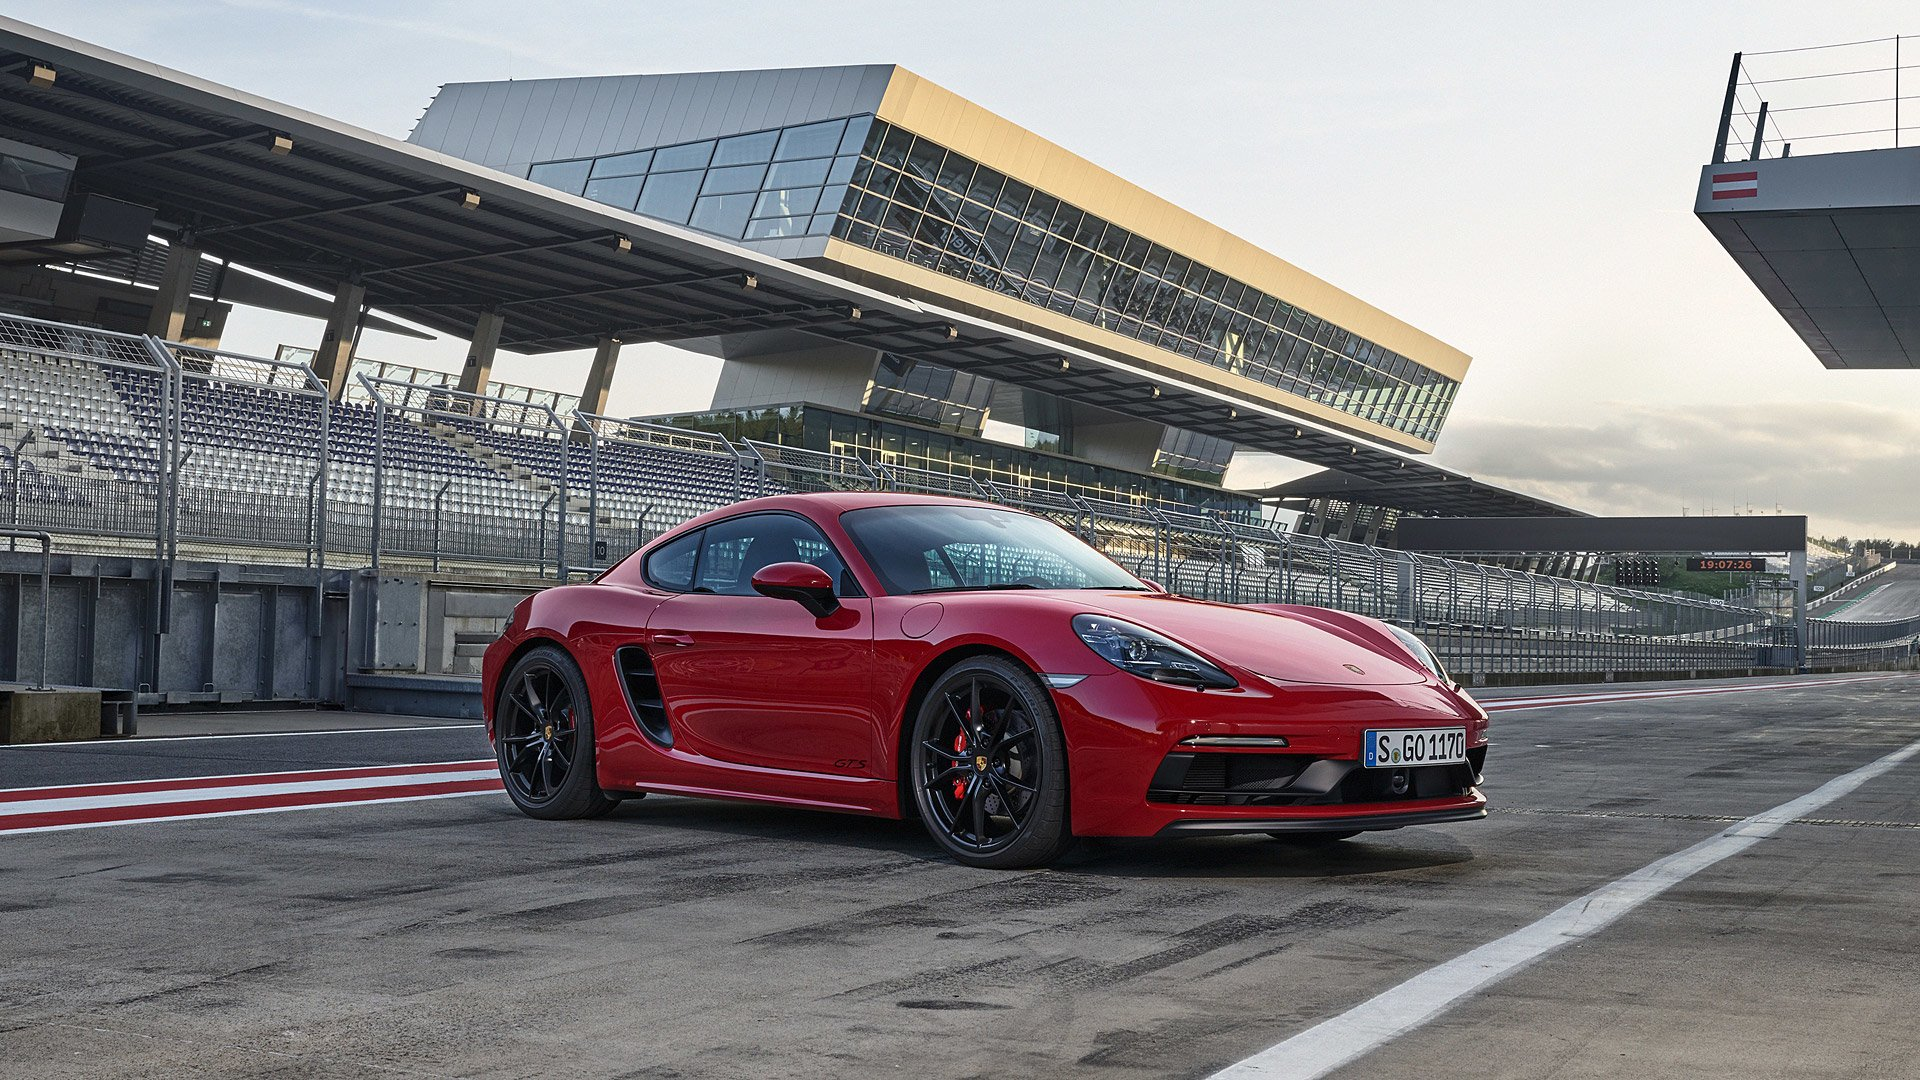 10 Porsche 718 Cayman Gts Hd Wallpapers Background Images Wallpaper Abyss